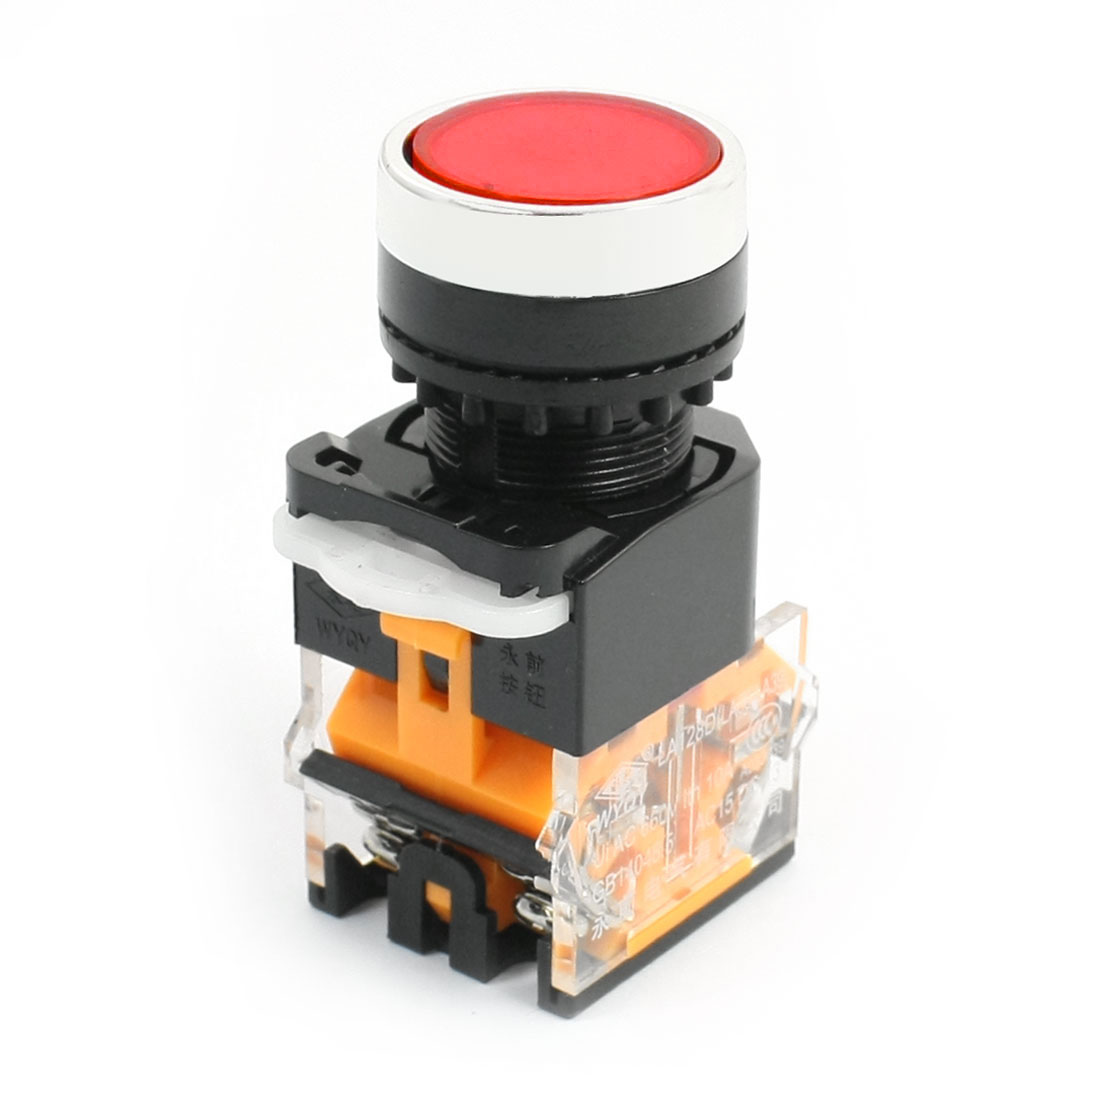 660V 10A DPST Momentary Red Round Head Emergency Stop Pushbutton Switch